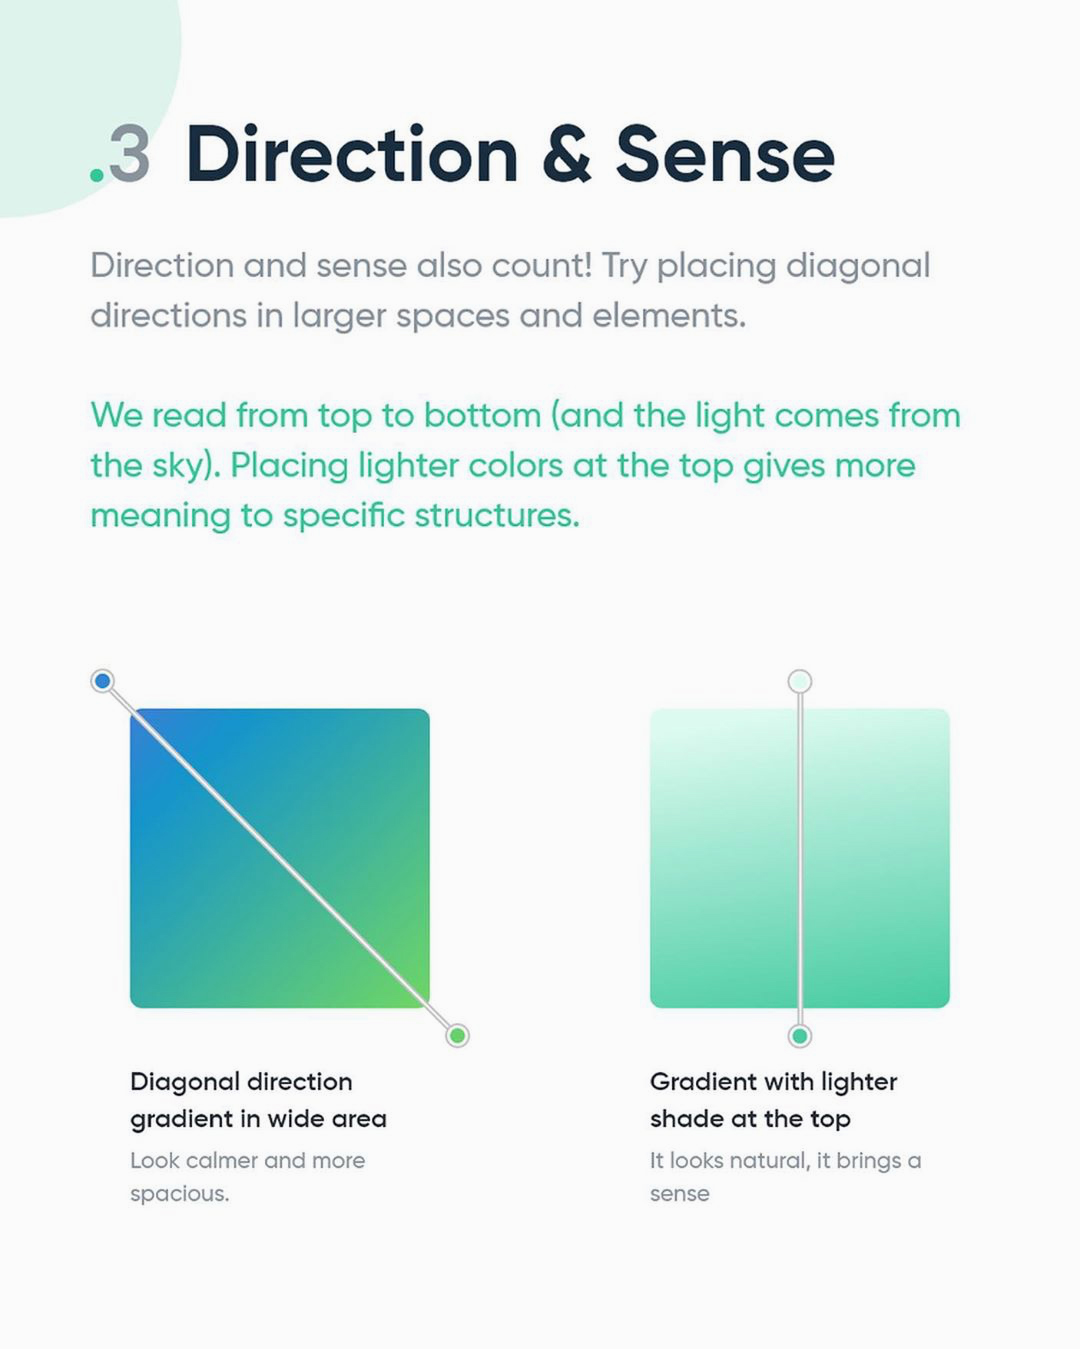 How to create better gradients - Direction & Sense